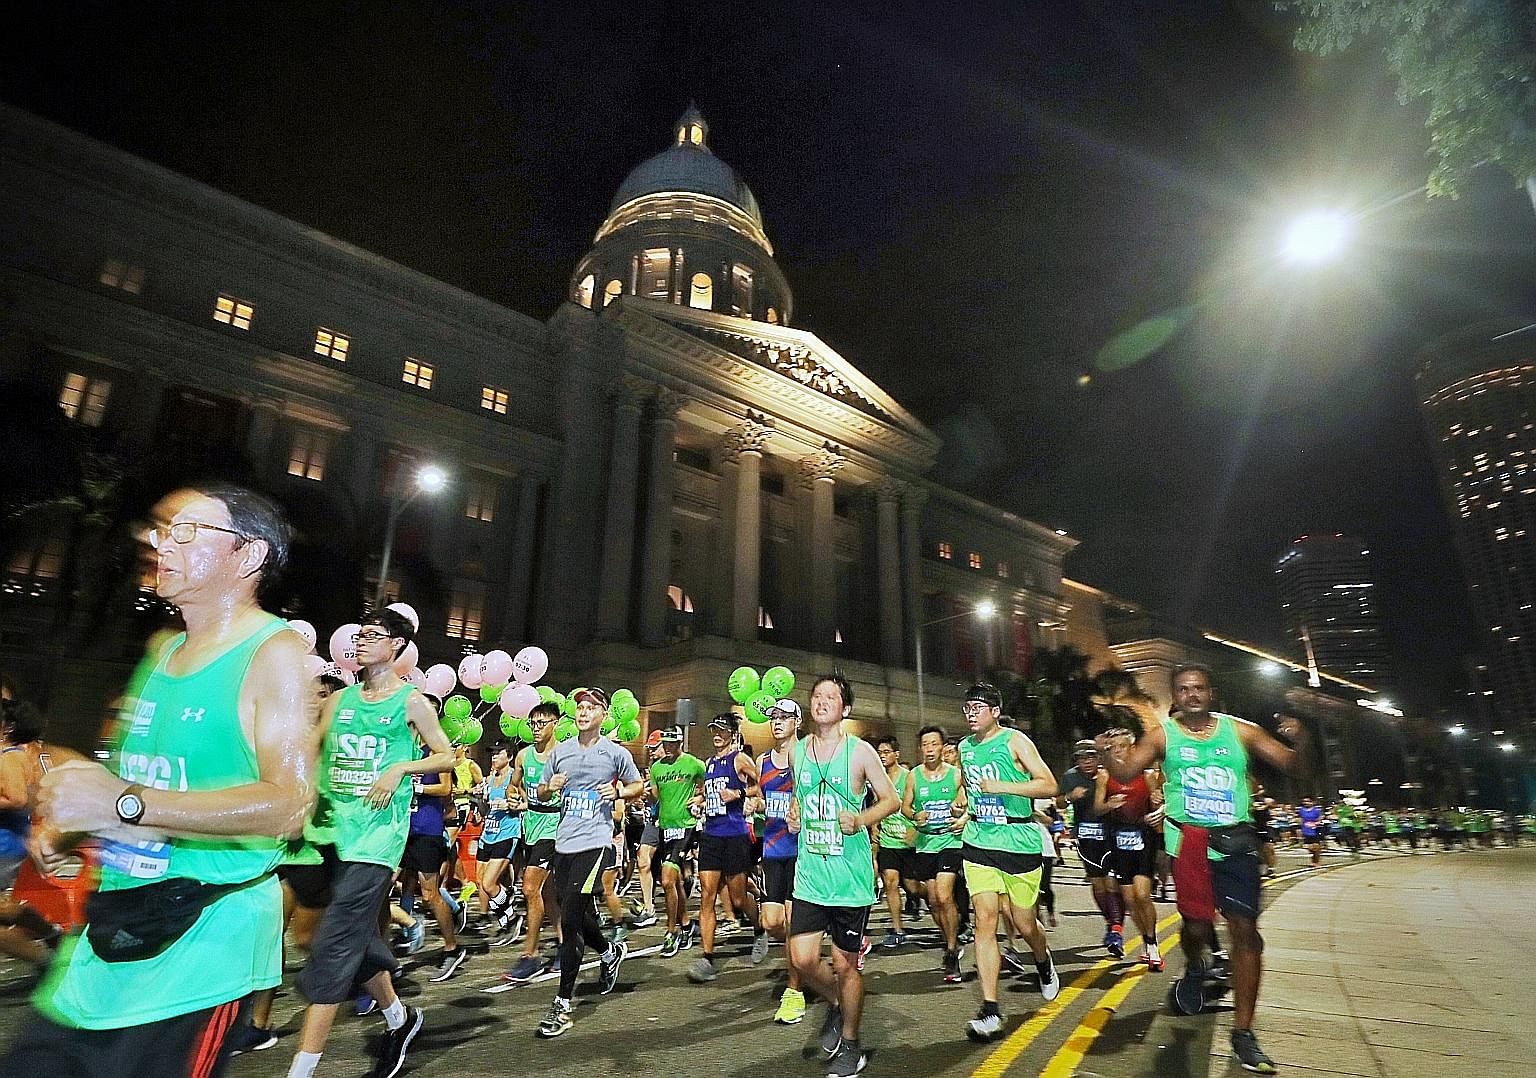 Runners made their way past the National Gallery yesterday as the city centre came alive at dawn with more than 30,000 enthusiasts pounding the streets during the Standard Chartered Singapore Marathon. The event, now into its 17th edition, attracted